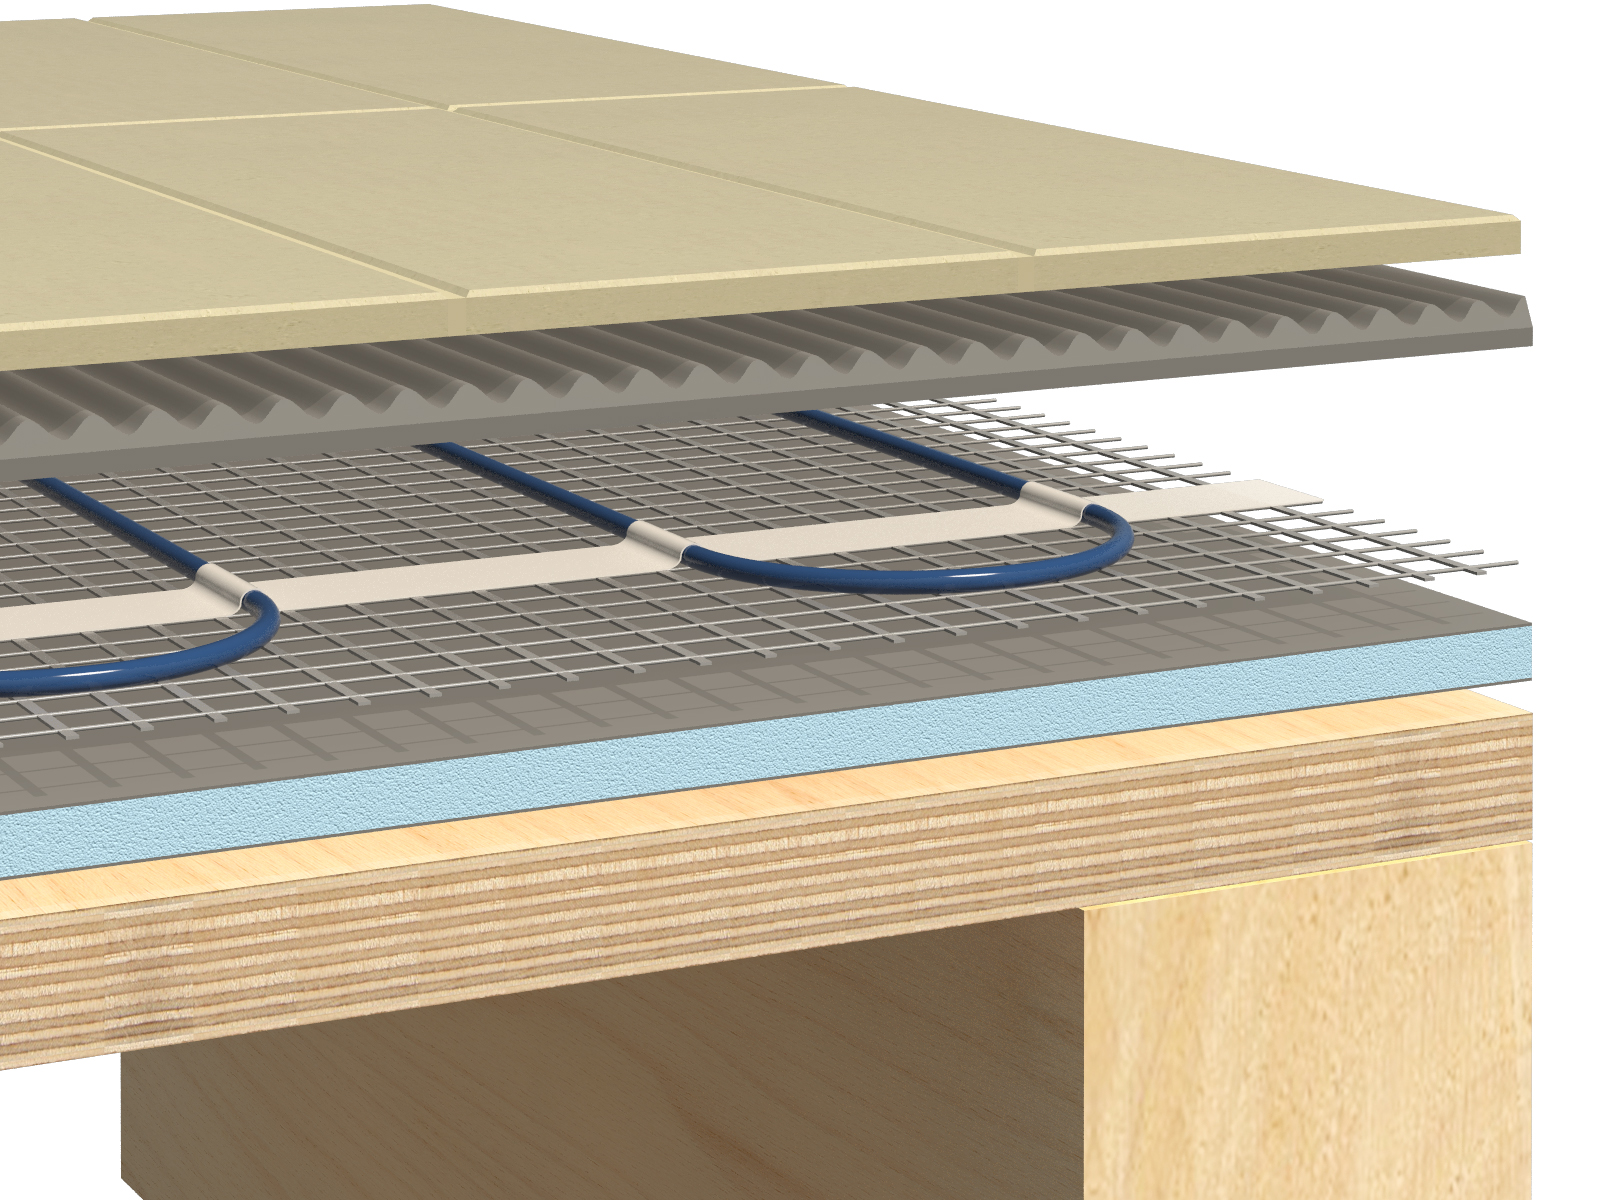 Underfloor Heating Electric Mats and Hotfoot